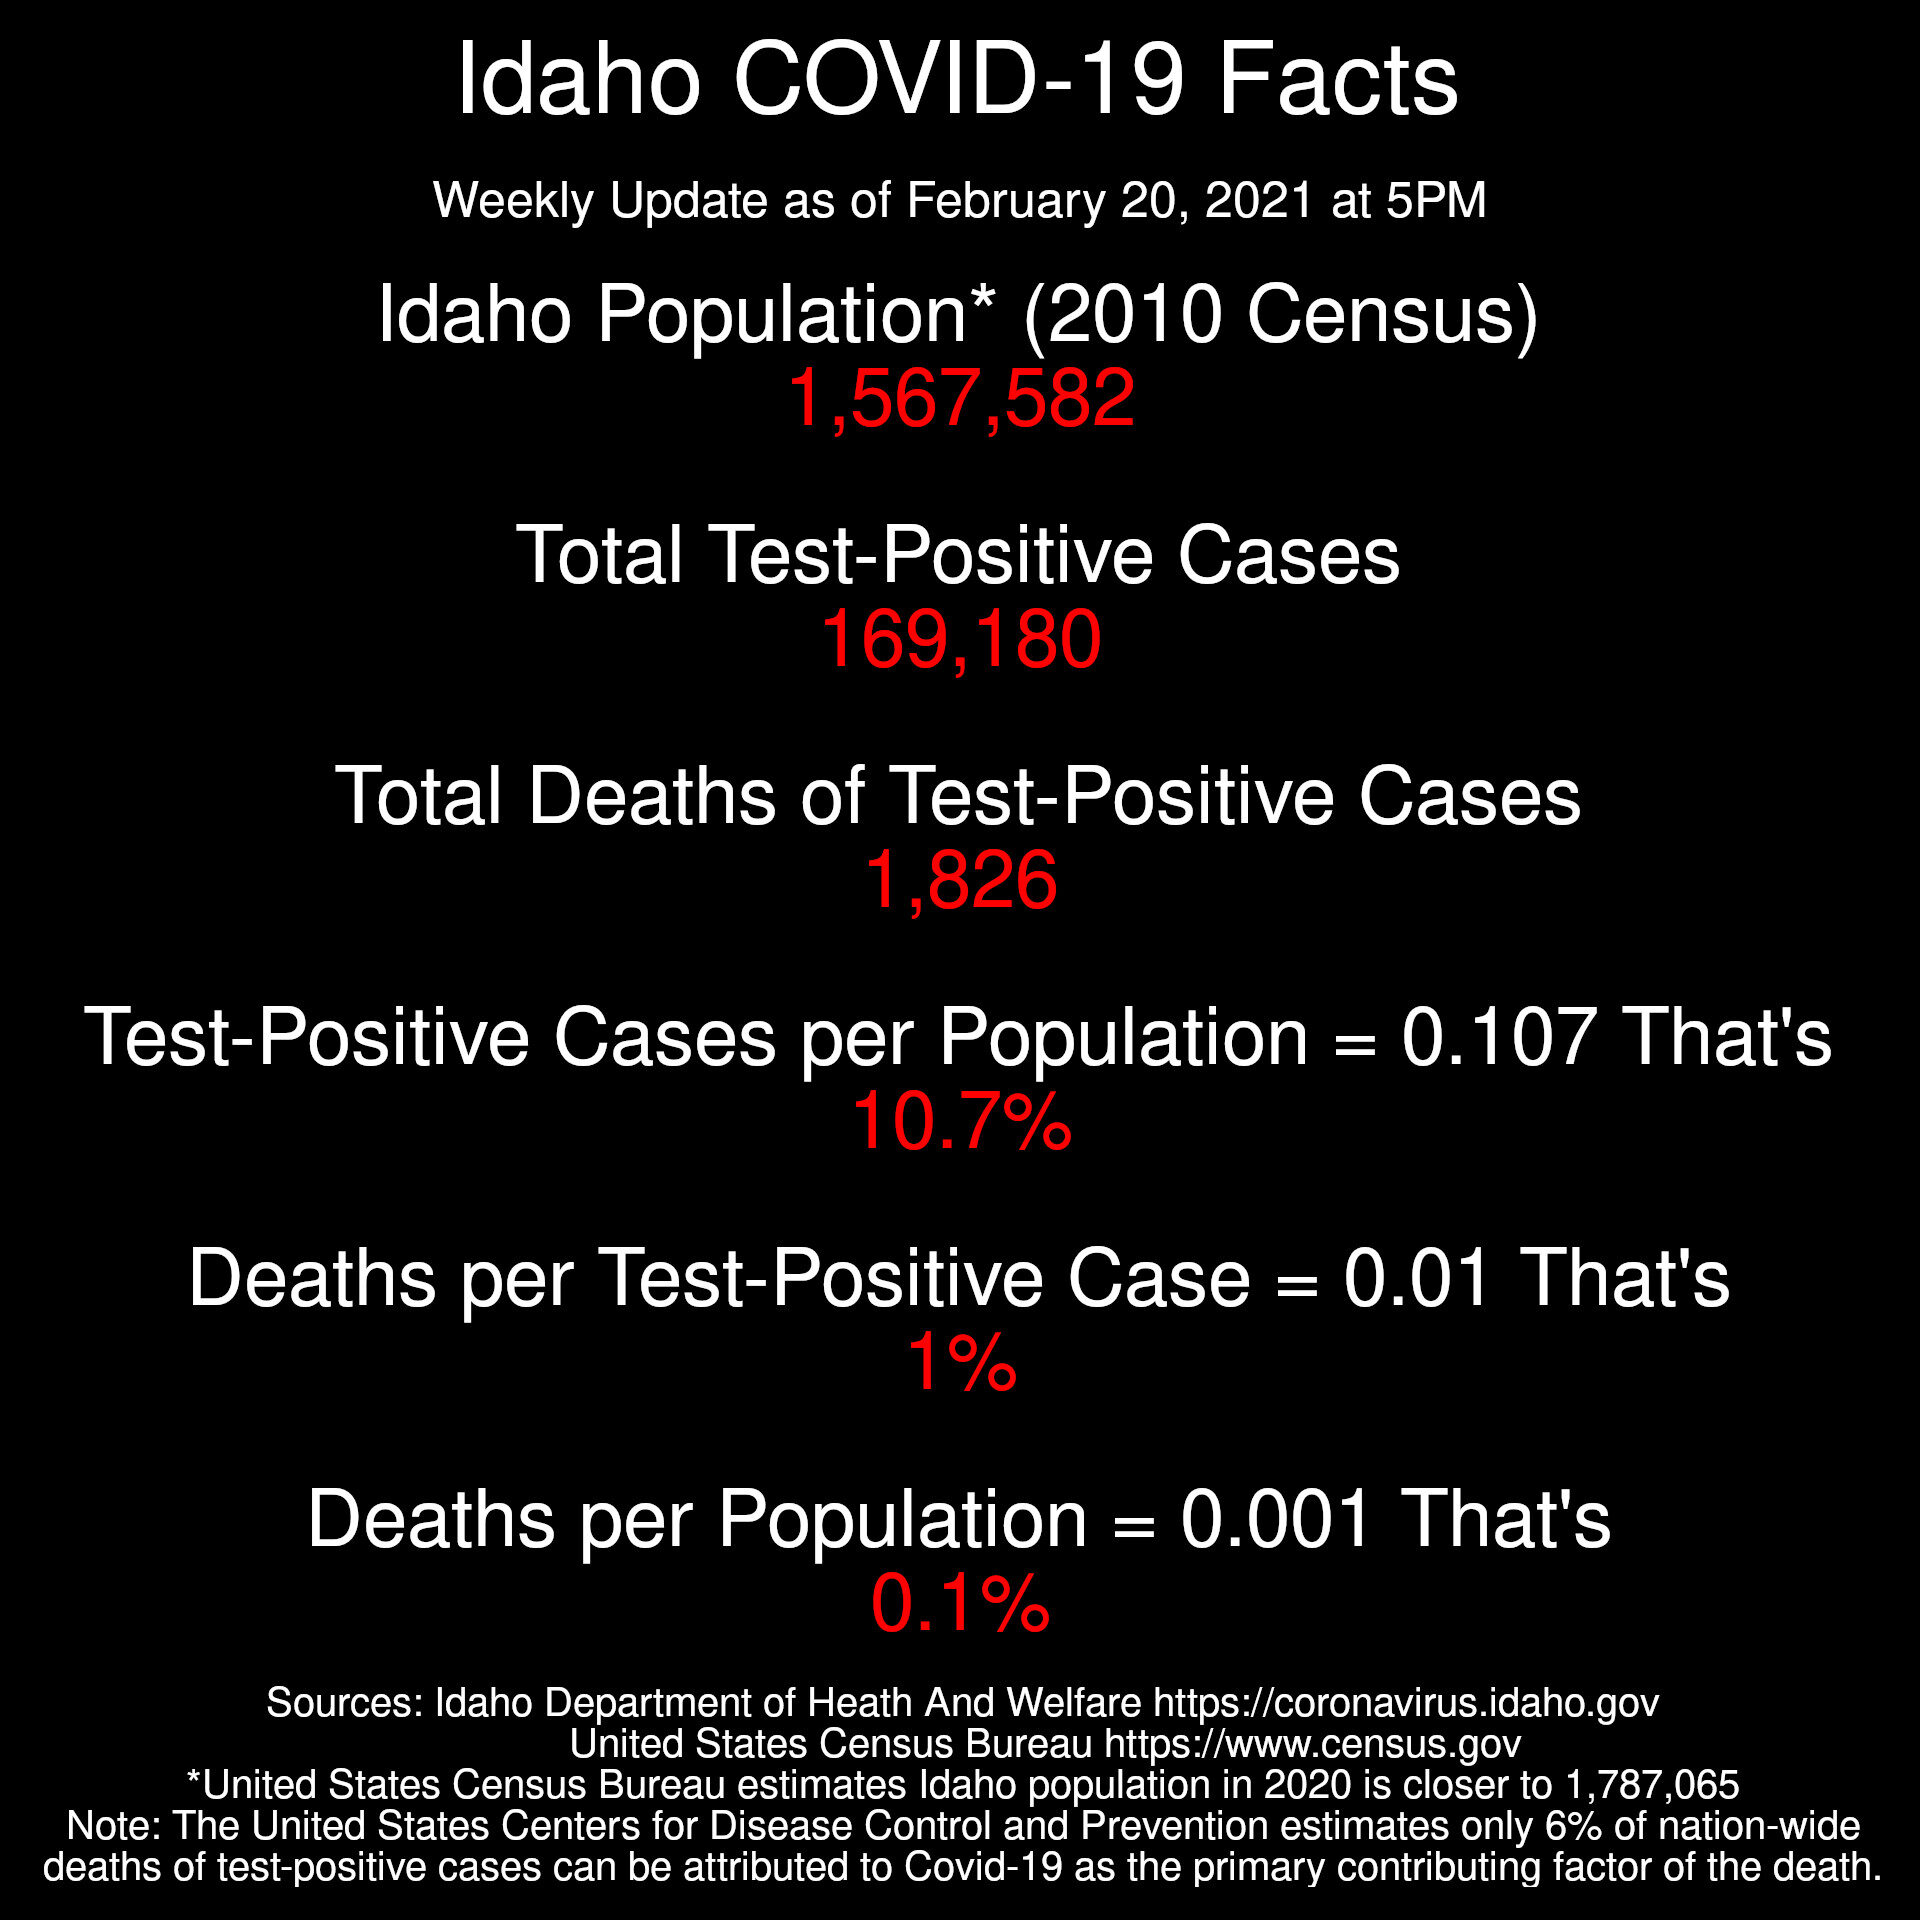 Idaho Coronavirus Facts  Weekly Update as of February 20, 2021 at 5PM  Population* (2010 Census): 1,567,582 Total Test-Positive Cases: 169,180 Total Deaths of Test-Positive Cases: 1,826  Test-Positive Cases per Population = 0.107 That's just 10.7%  Deaths per Test-Positive Case: 0.01 That's just 1%  Deaths per Population: 0.001 That's just 0.1%  Sources: Idaho Department of Heath And Welfare https://coronavirus.idaho.gov United States Census Bureau https://www.census.gov *United States Census Bureau estimates Idaho population in 2020 is closer to 1,787,065 Note: The United States Centers for Disease Control and Prevention estimates only 6% of nation-wide deaths of test-positive cases can be attributed to Covid-19 as the primary contributing factor of the death.